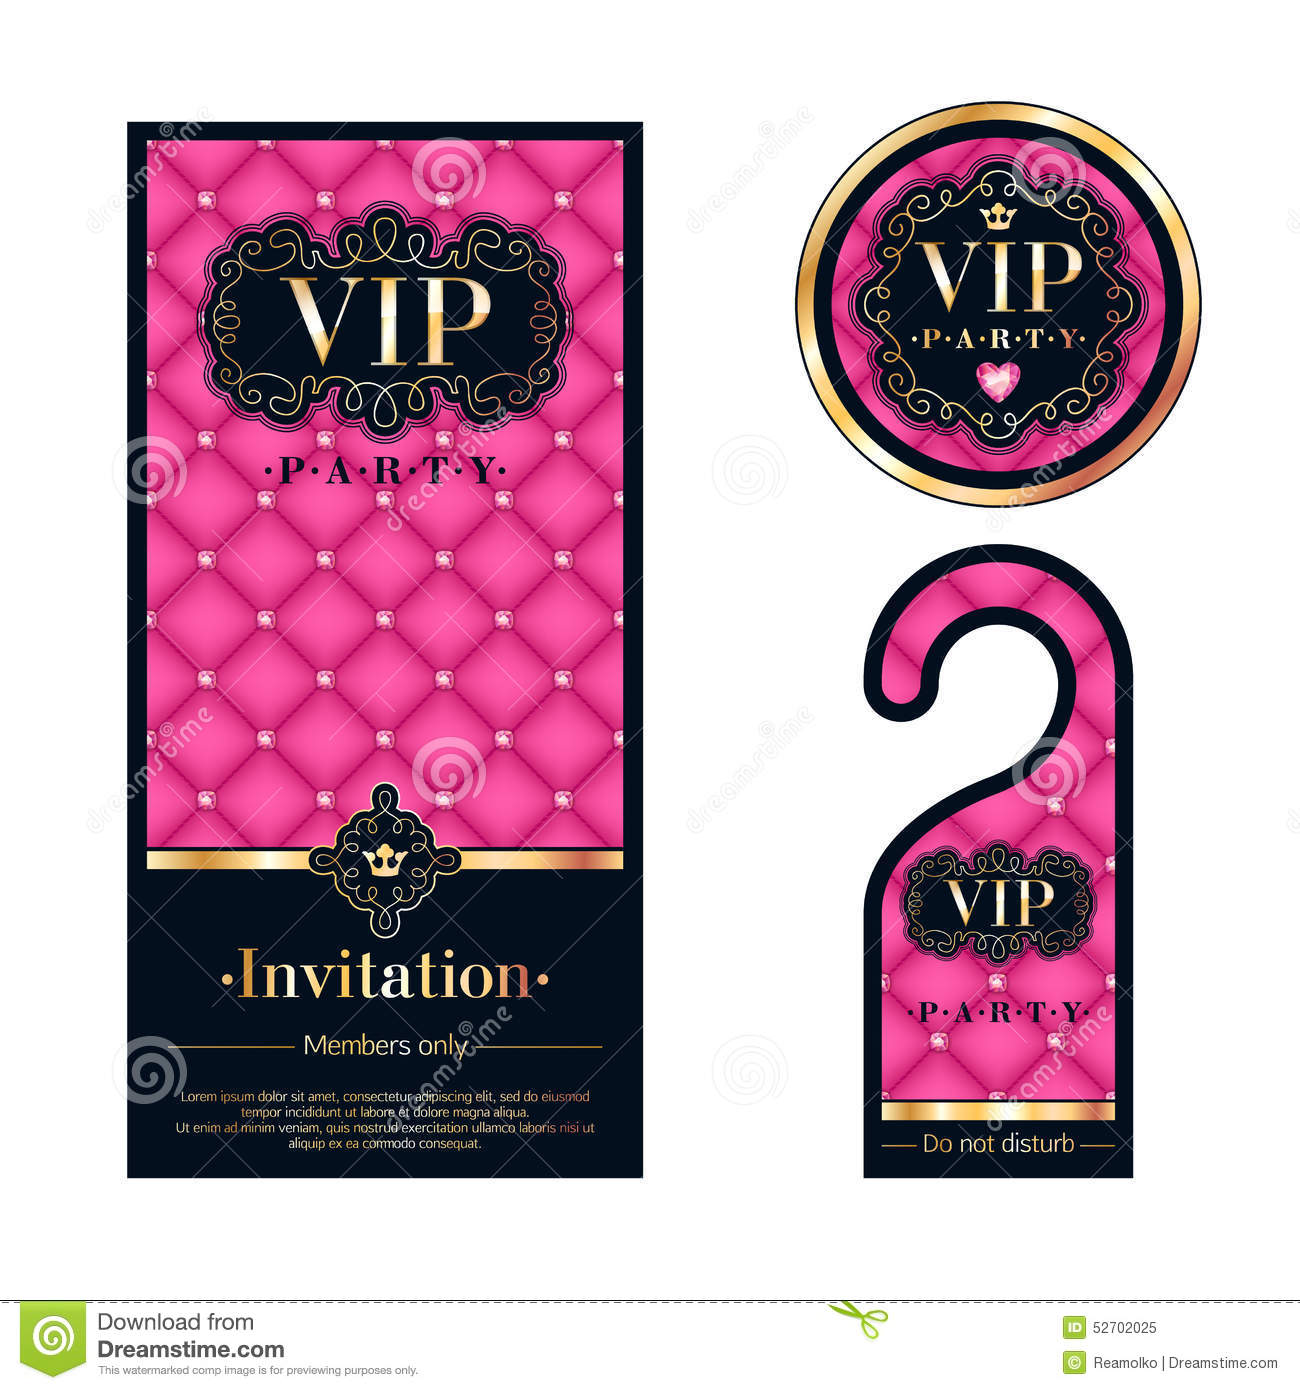 VIP Invitation Card, Warning Hanger And Badge Stock Vector - Image: 52702025